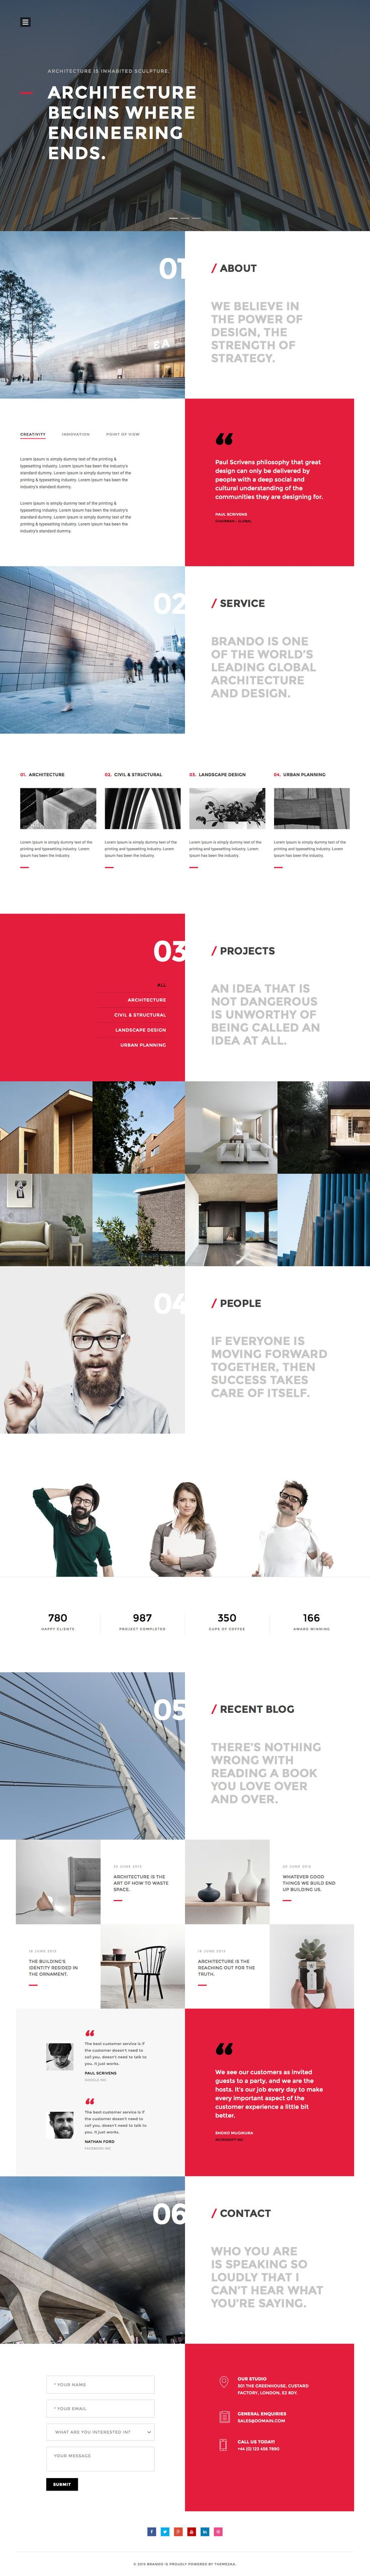 """Brando' is a new One Page HTML template with 8 pre-made layouts, covering multiple industries. The design is definitely above par for a template and my favorite being the super slick Architecture layout option featured here. The additional layouts include digital agency, personal page, spa, photography, wedding, restaurant, travel and a launching soon page. It's actually inspiring what ThemeZaa have done here in the template game - all for only $17."